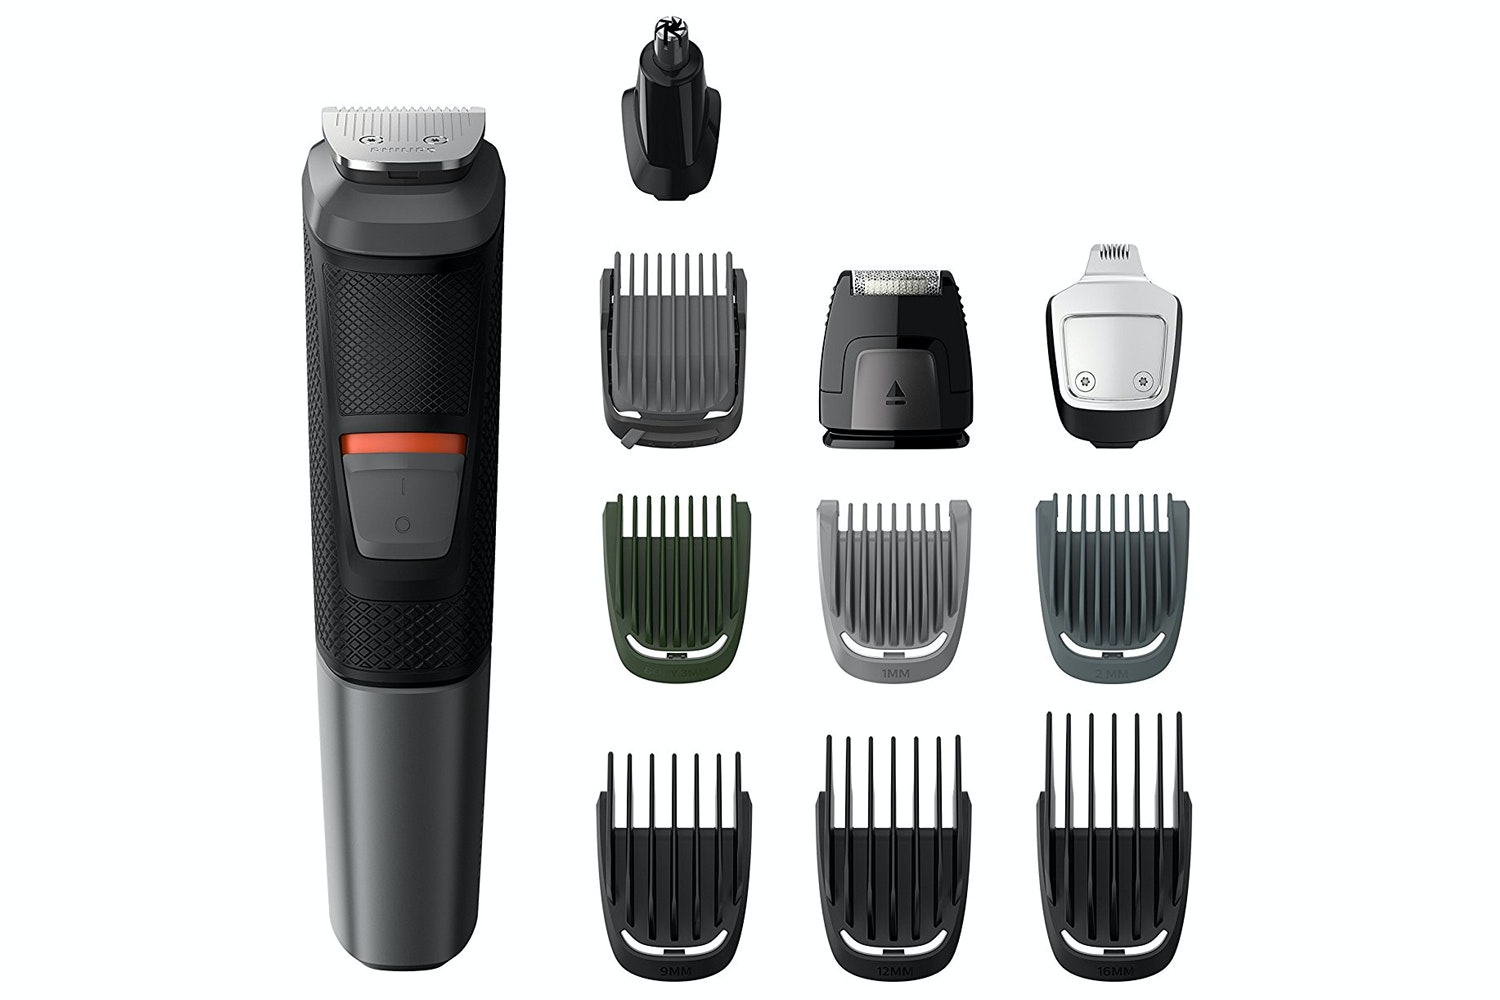 Philips Series 5000 11-in-1 Multi Grooming Kit | MG5730/13